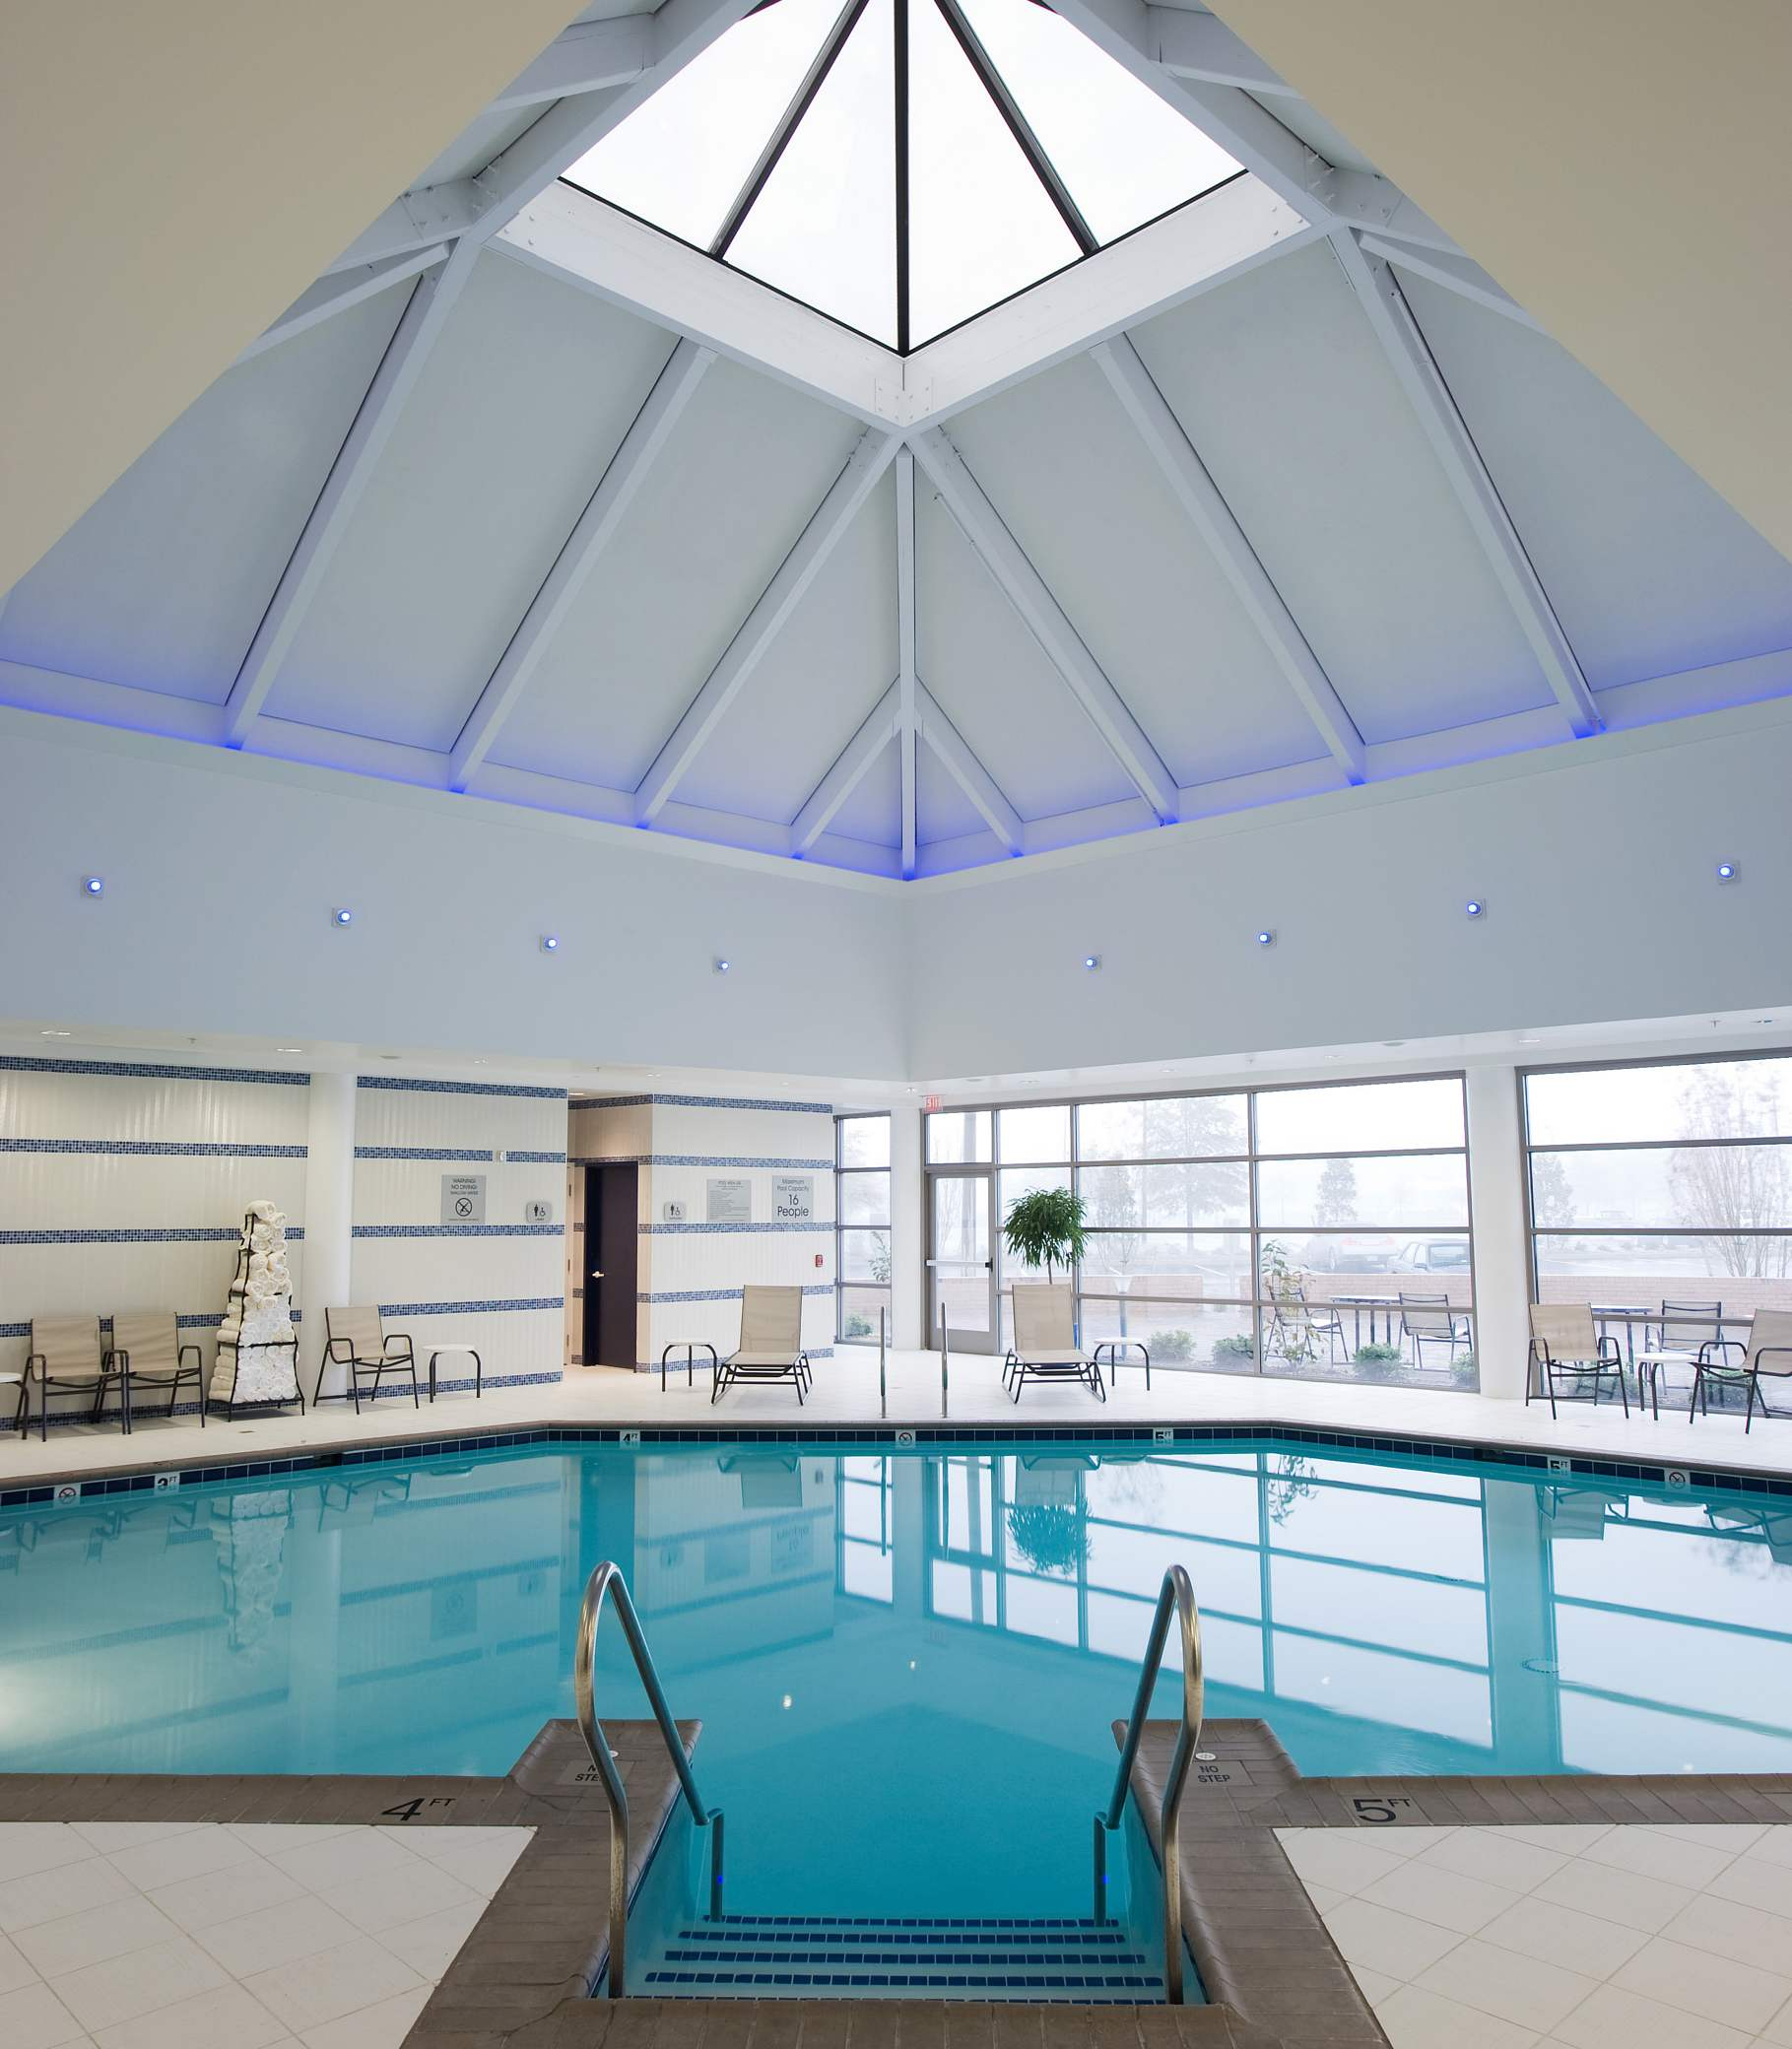 Portsmouth Hotels With Pool: Delta Hotels By Marriott Chesapeake, Chesapeake Virginia